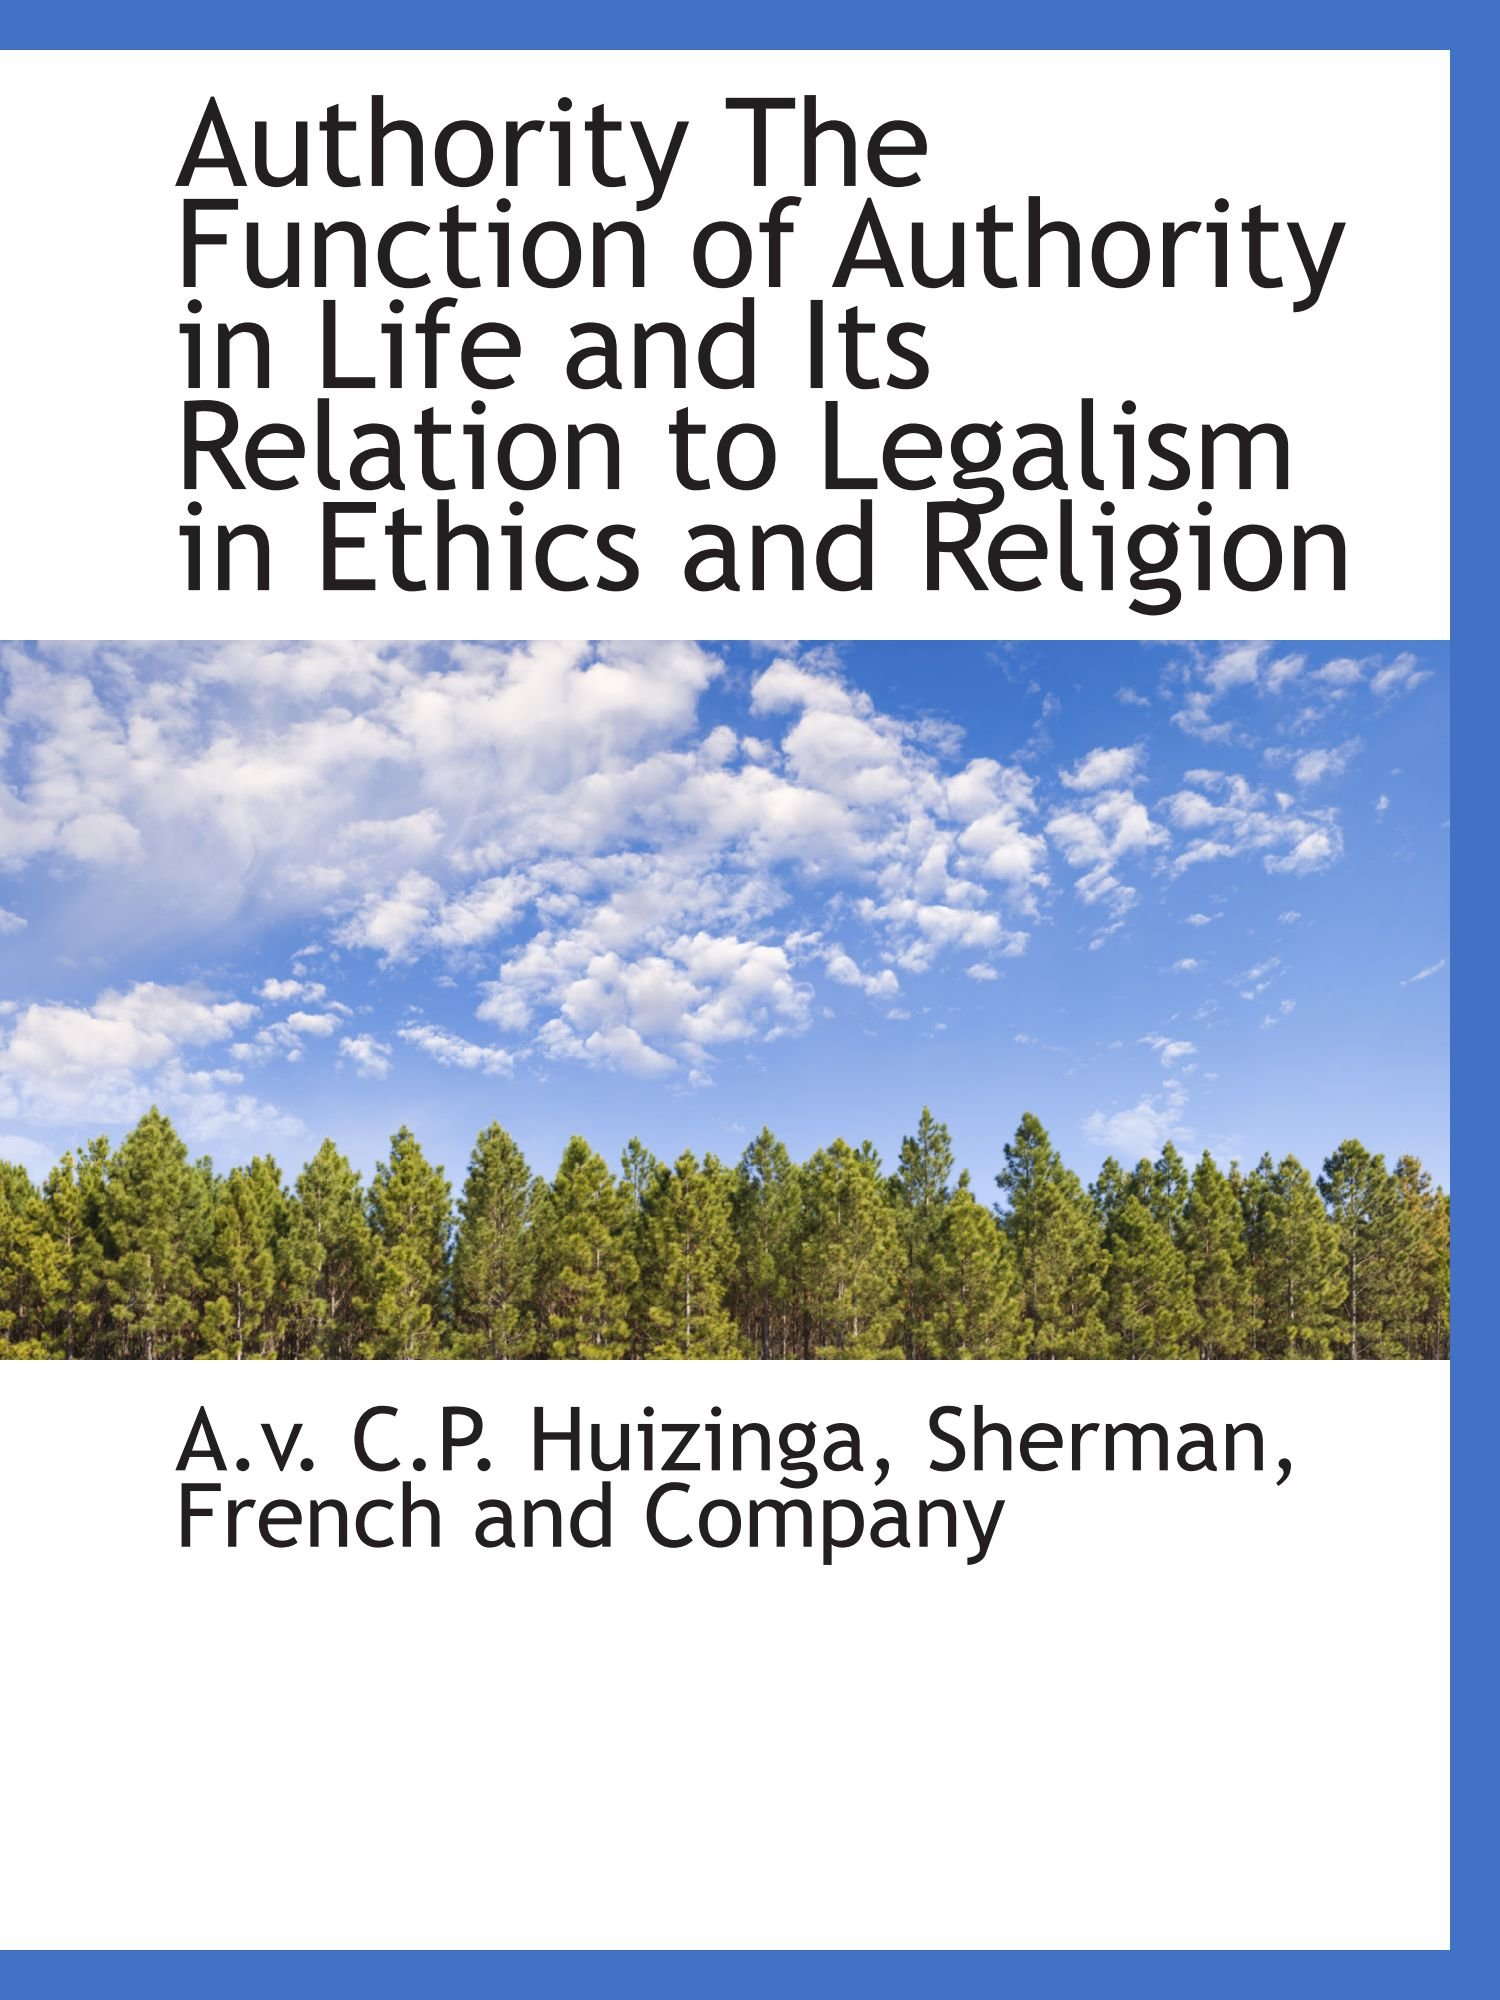 Download Authority The Function of Authority in Life and Its Relation to Legalism in Ethics and Religion pdf